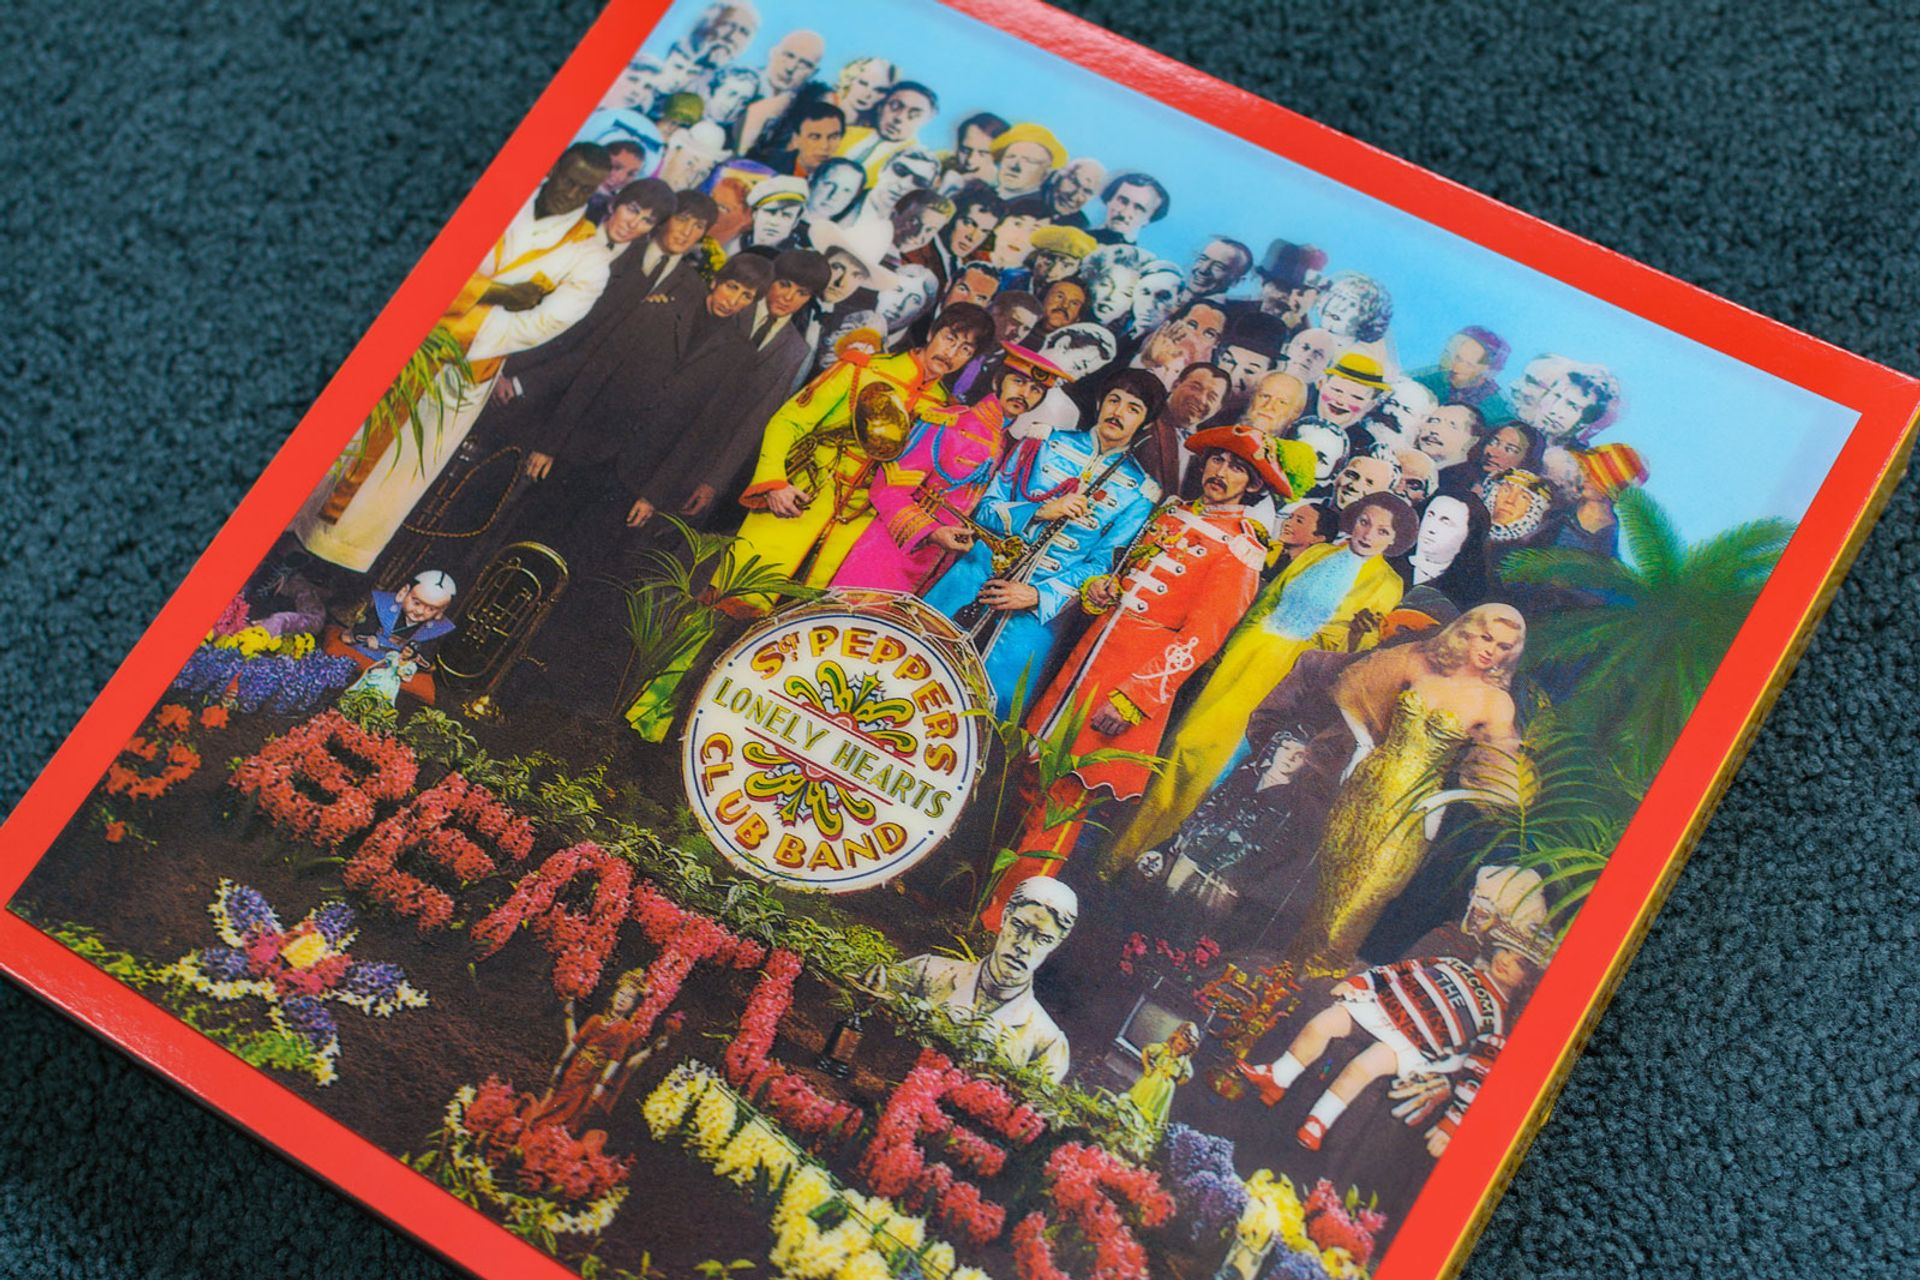 """The Beatles' Sgt Pepper's Lonely Hearts Club Band album the band's """"heroes"""""""